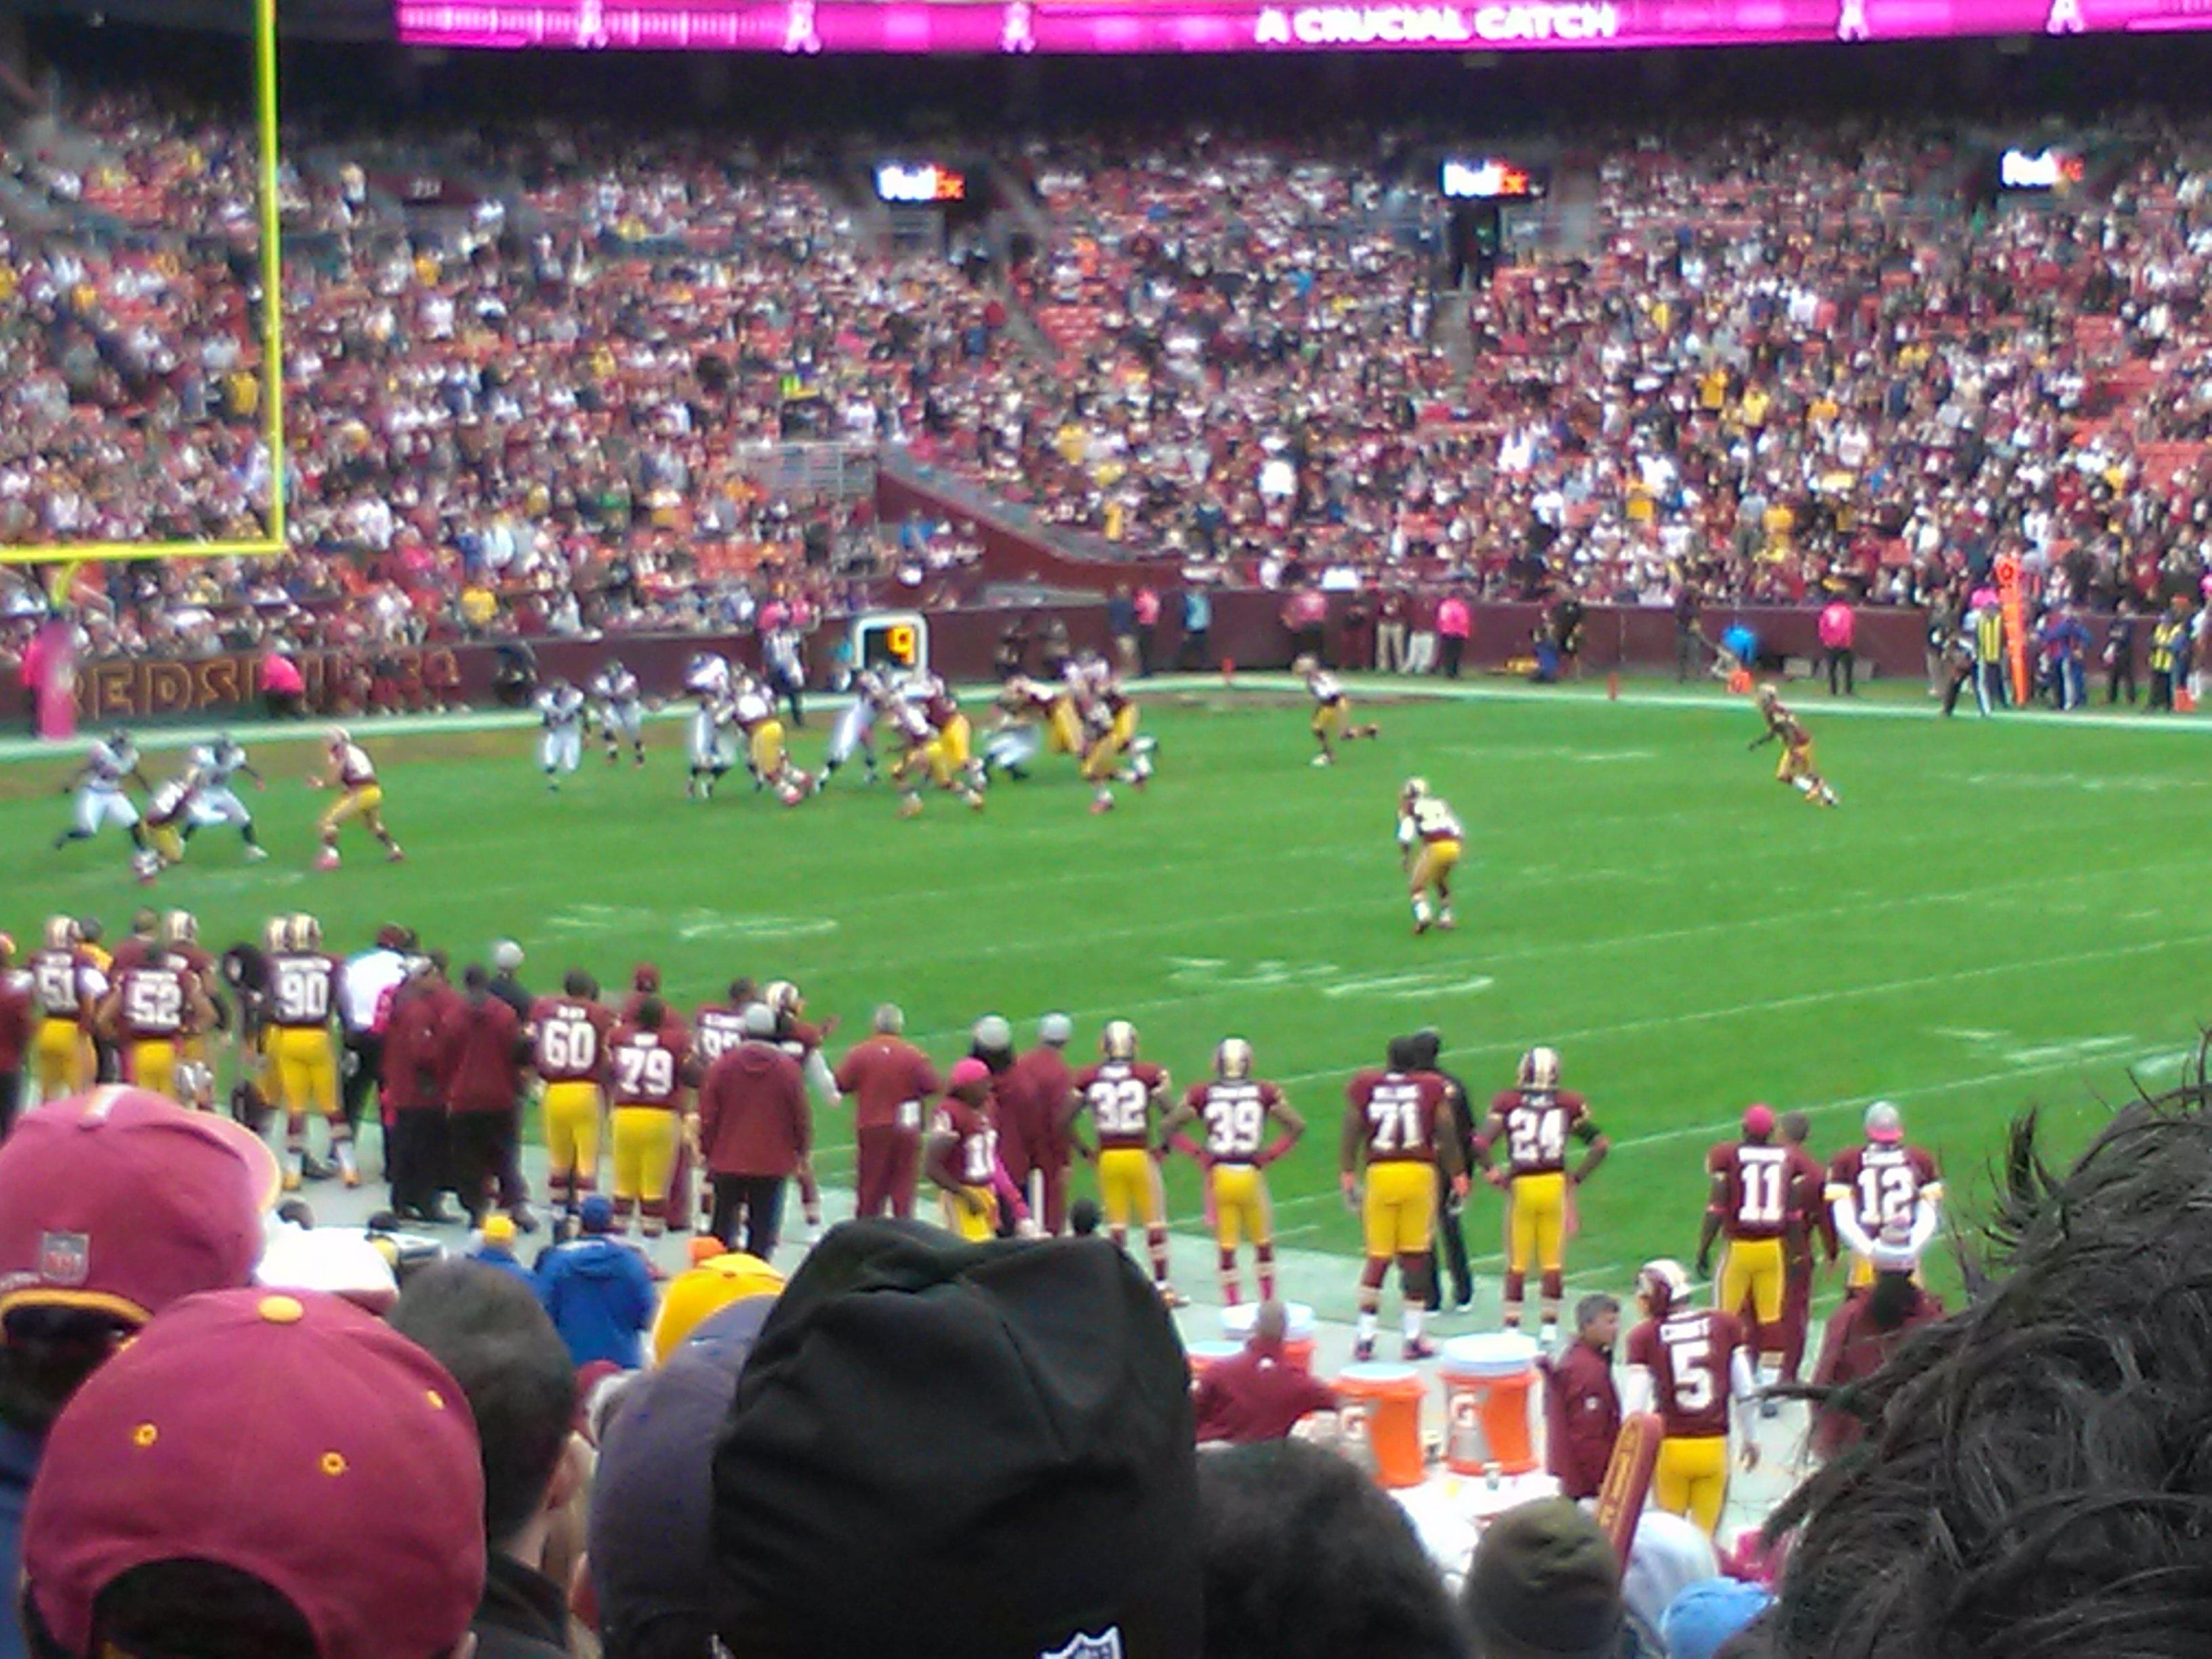 View From Section 141, Row 17, Seat 8